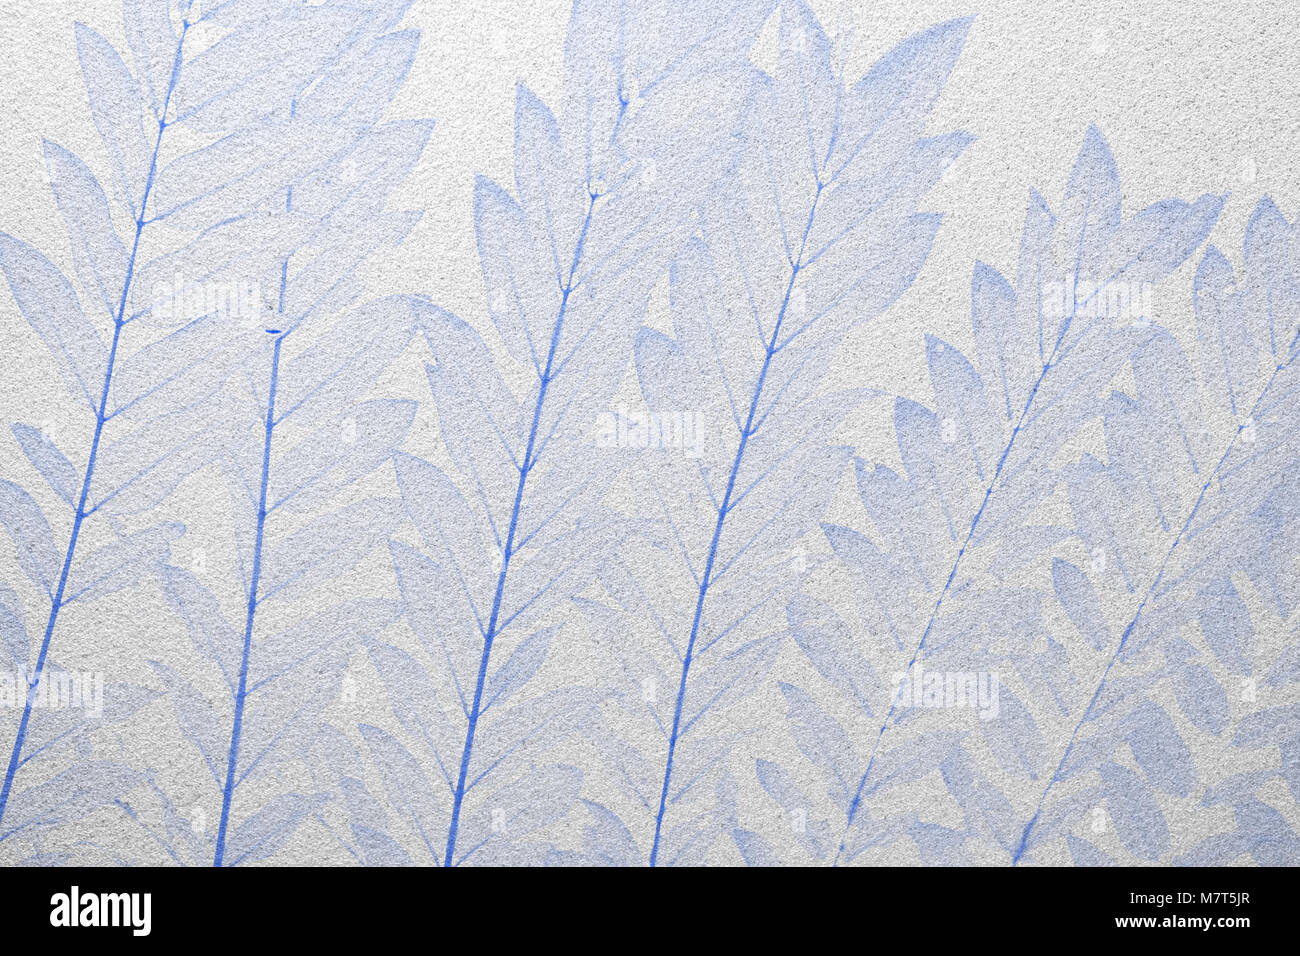 Blue Leaves Frosted Glass Texture As Background Interior Design